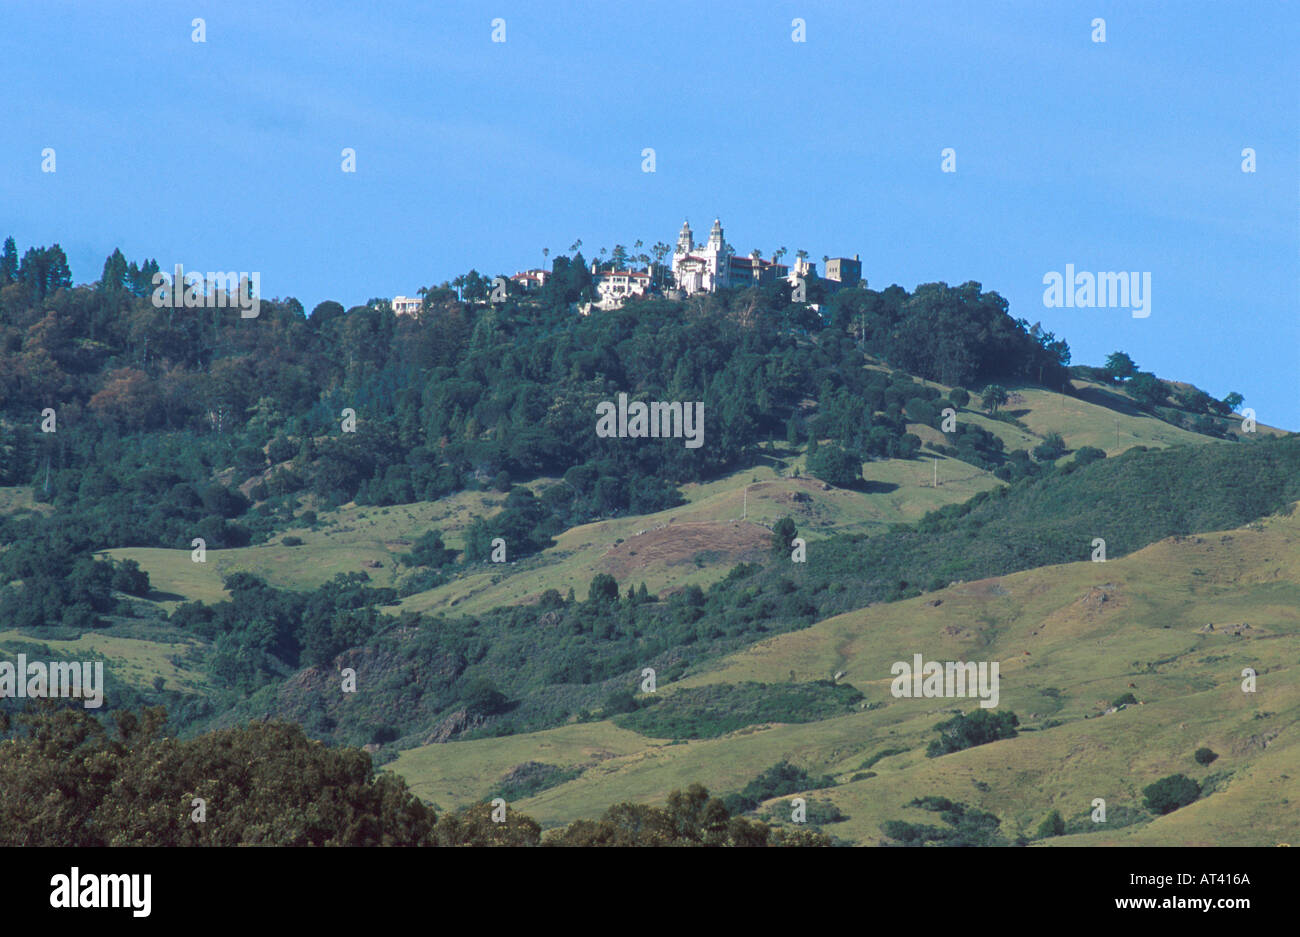 San Simion Hearst Castle On Top Of Hill In California